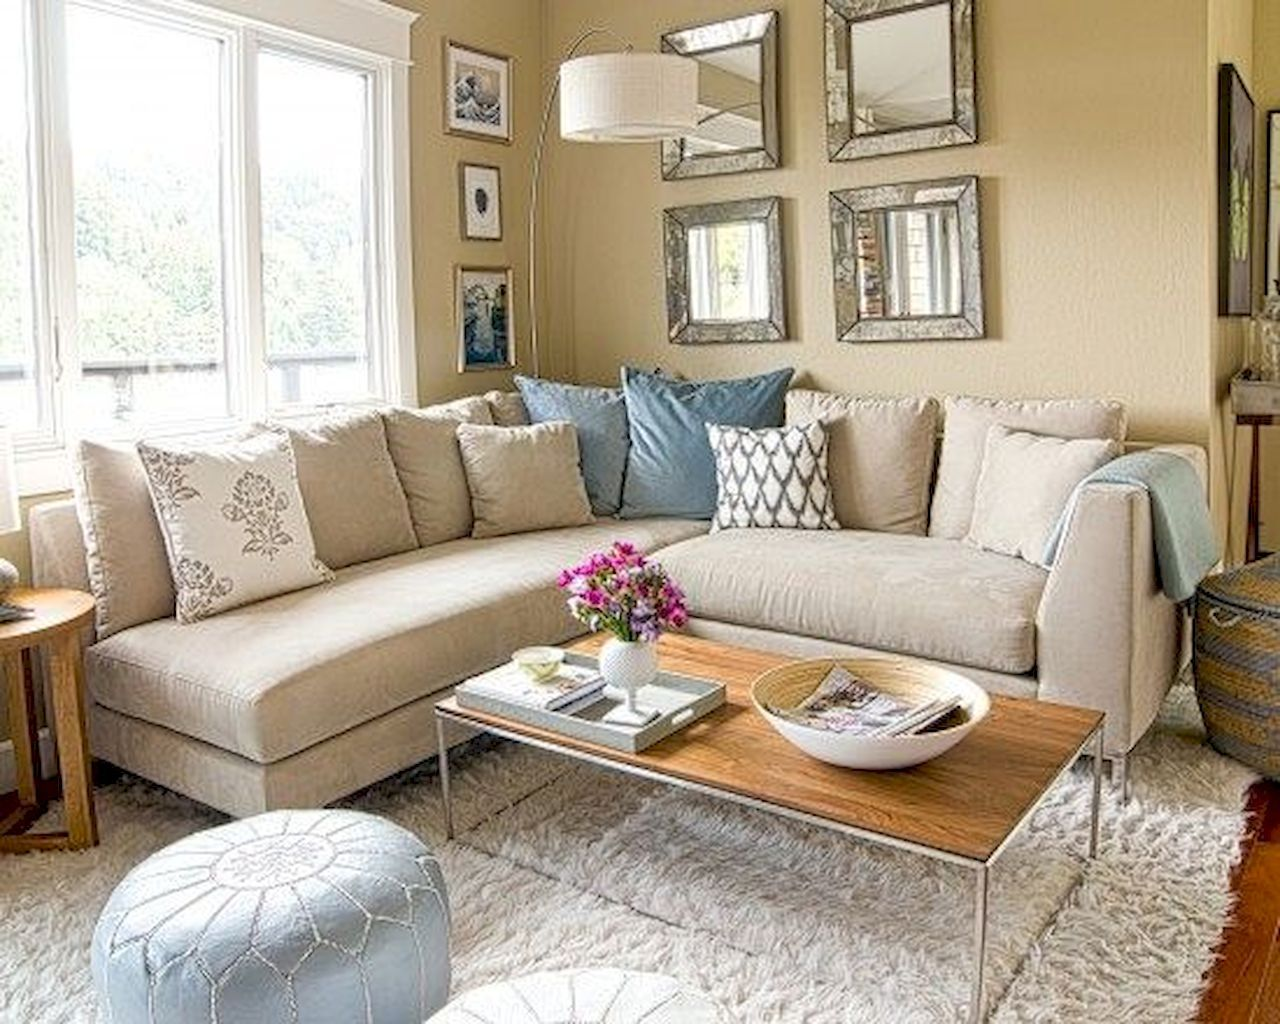 36 Small Living Room Ideas On A Budget  Small Living Rooms Small Enchanting Living Room Ideas On A Budget Design Inspiration